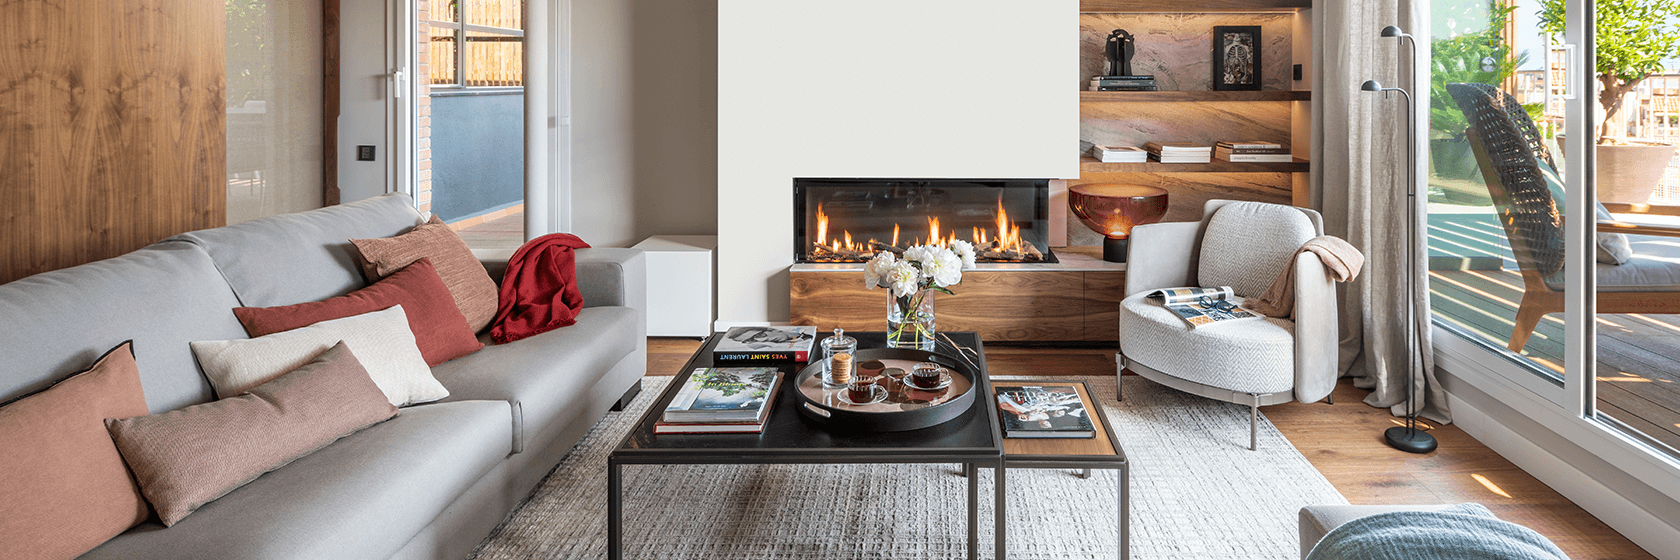 G&G: Best Residential Projects of 2020 | The Room Studio